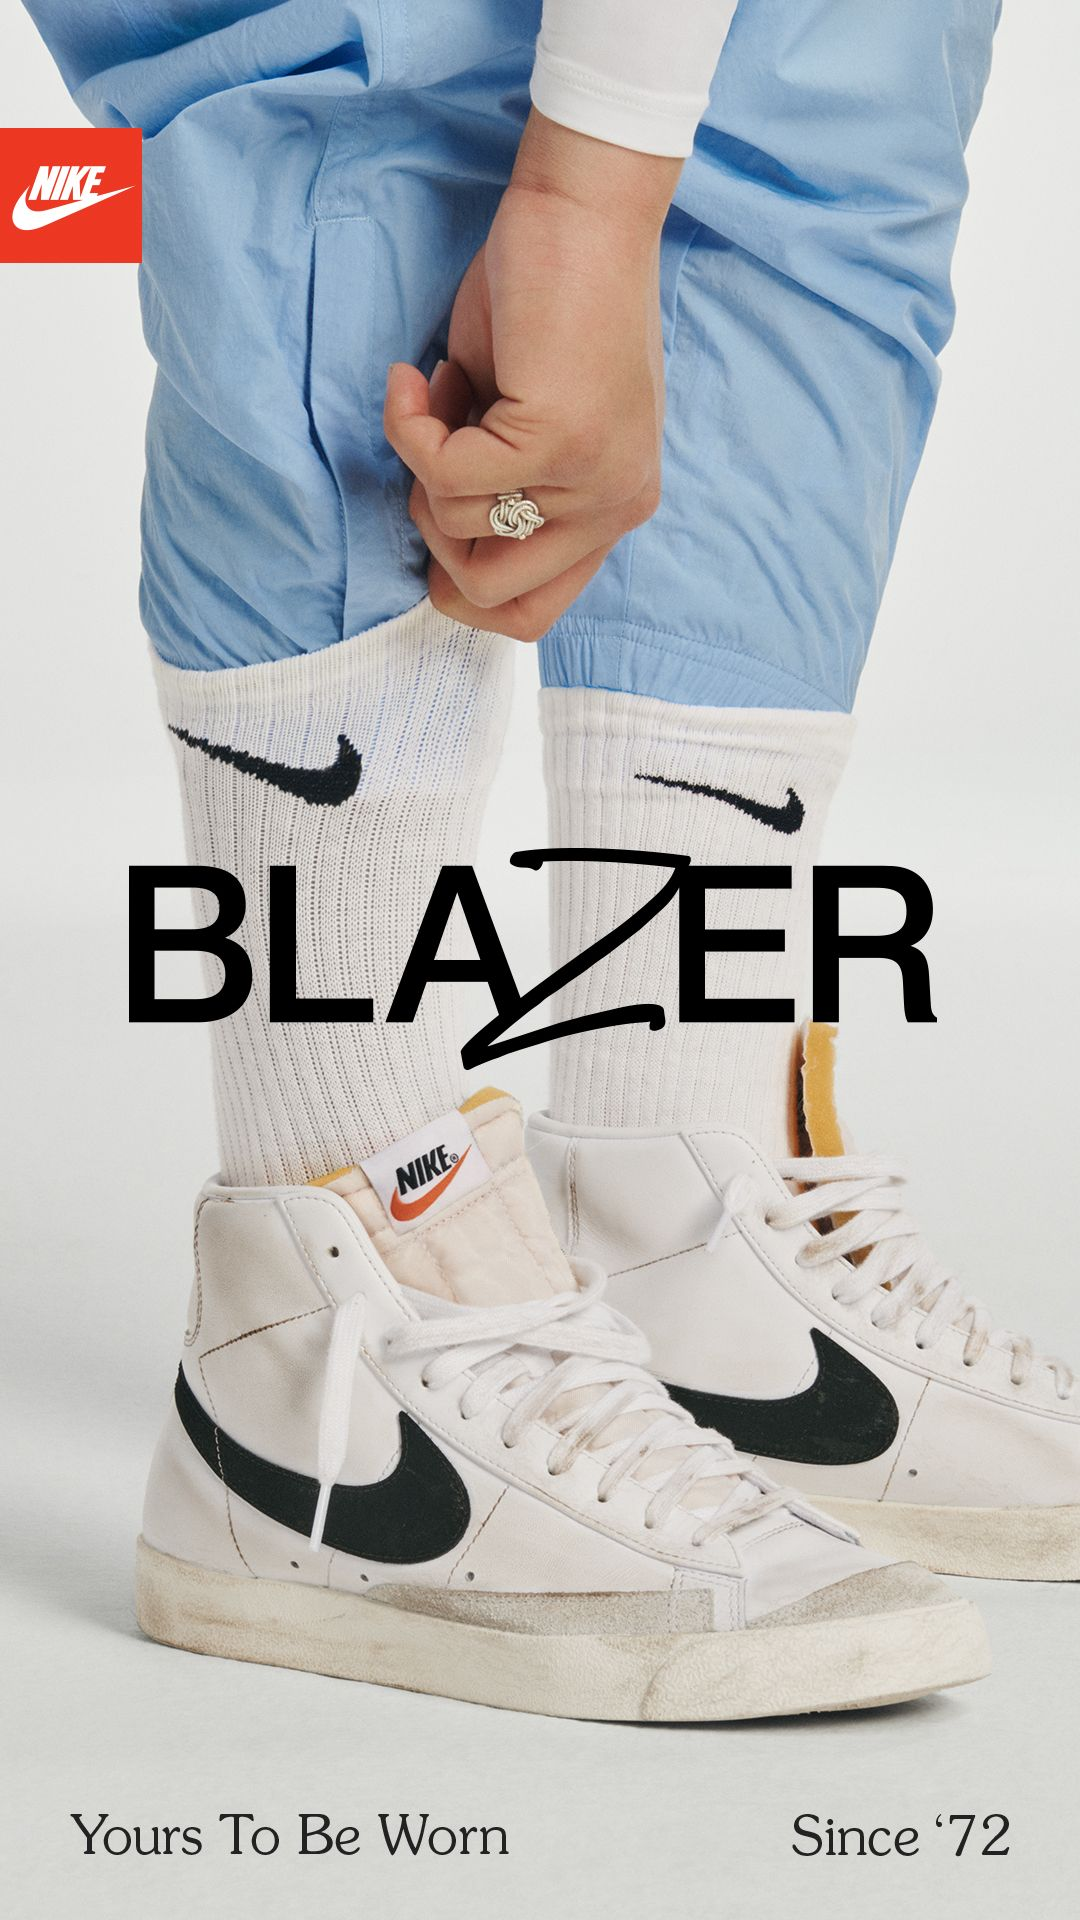 The Blazer's a Nike shoe - but it's made for you.